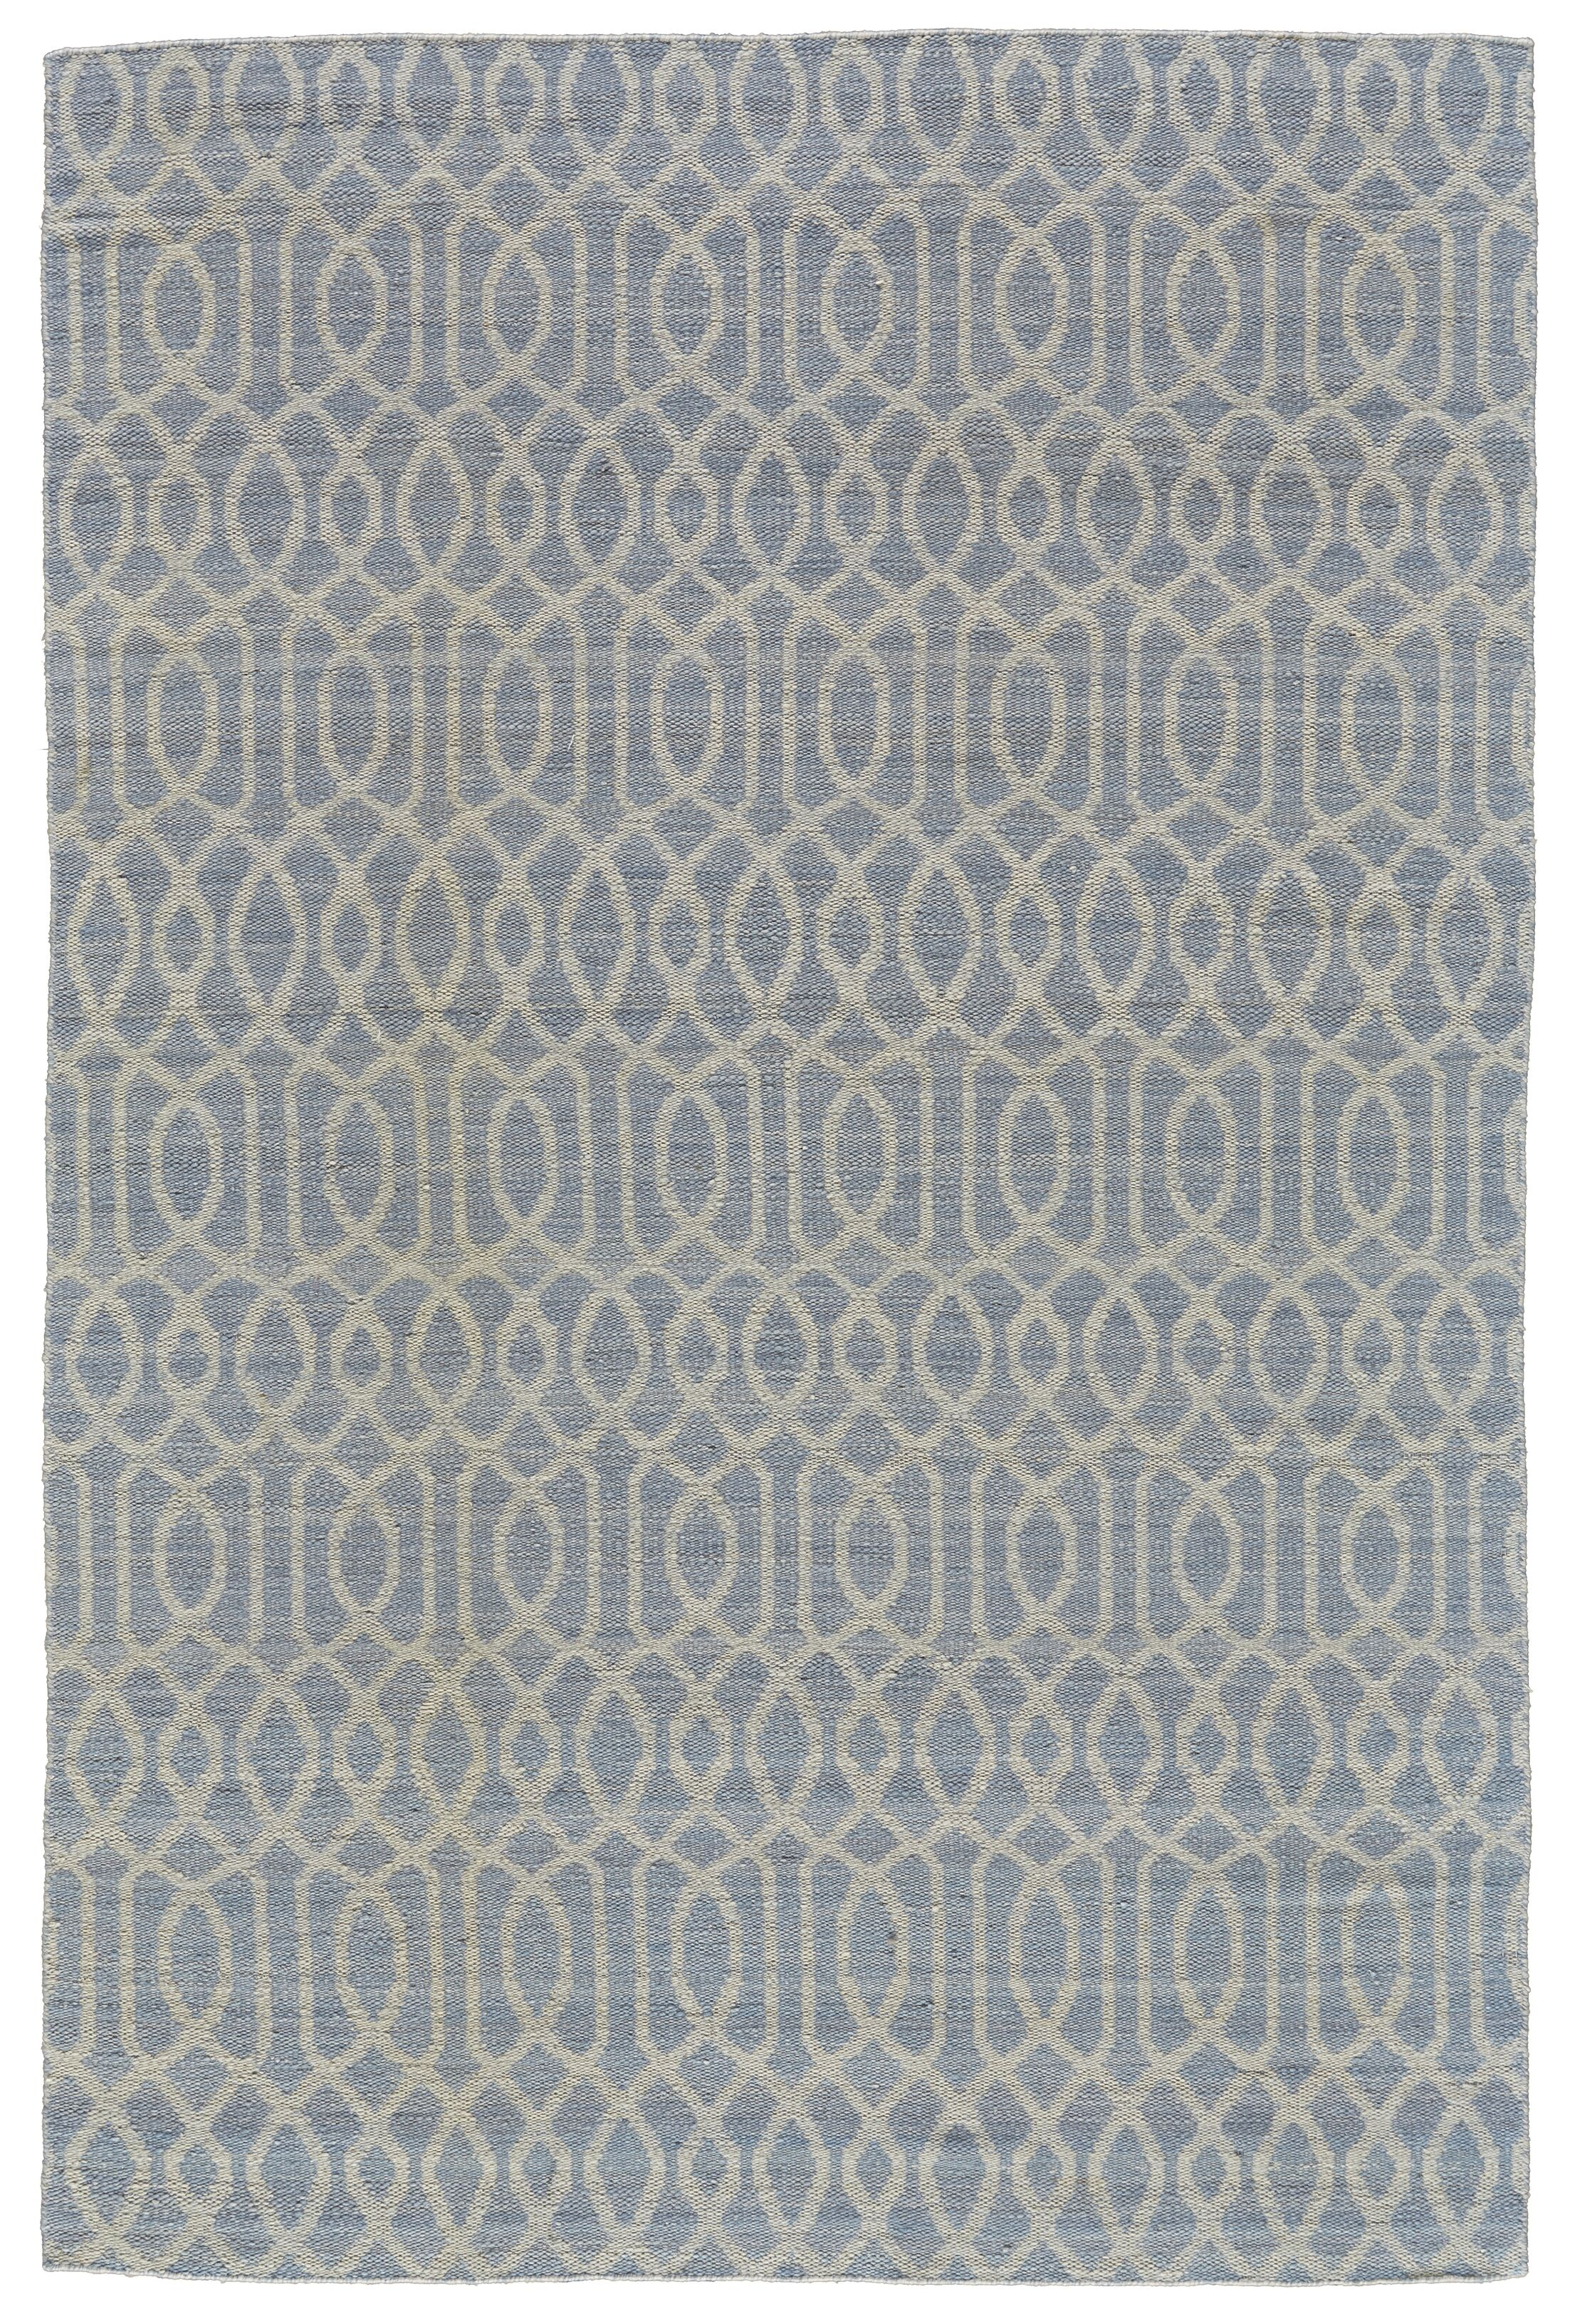 Bannerdown Hand-Loomed Light Blue Wool Pile Area Rug Rug Size: Rectangle 8' x 10'